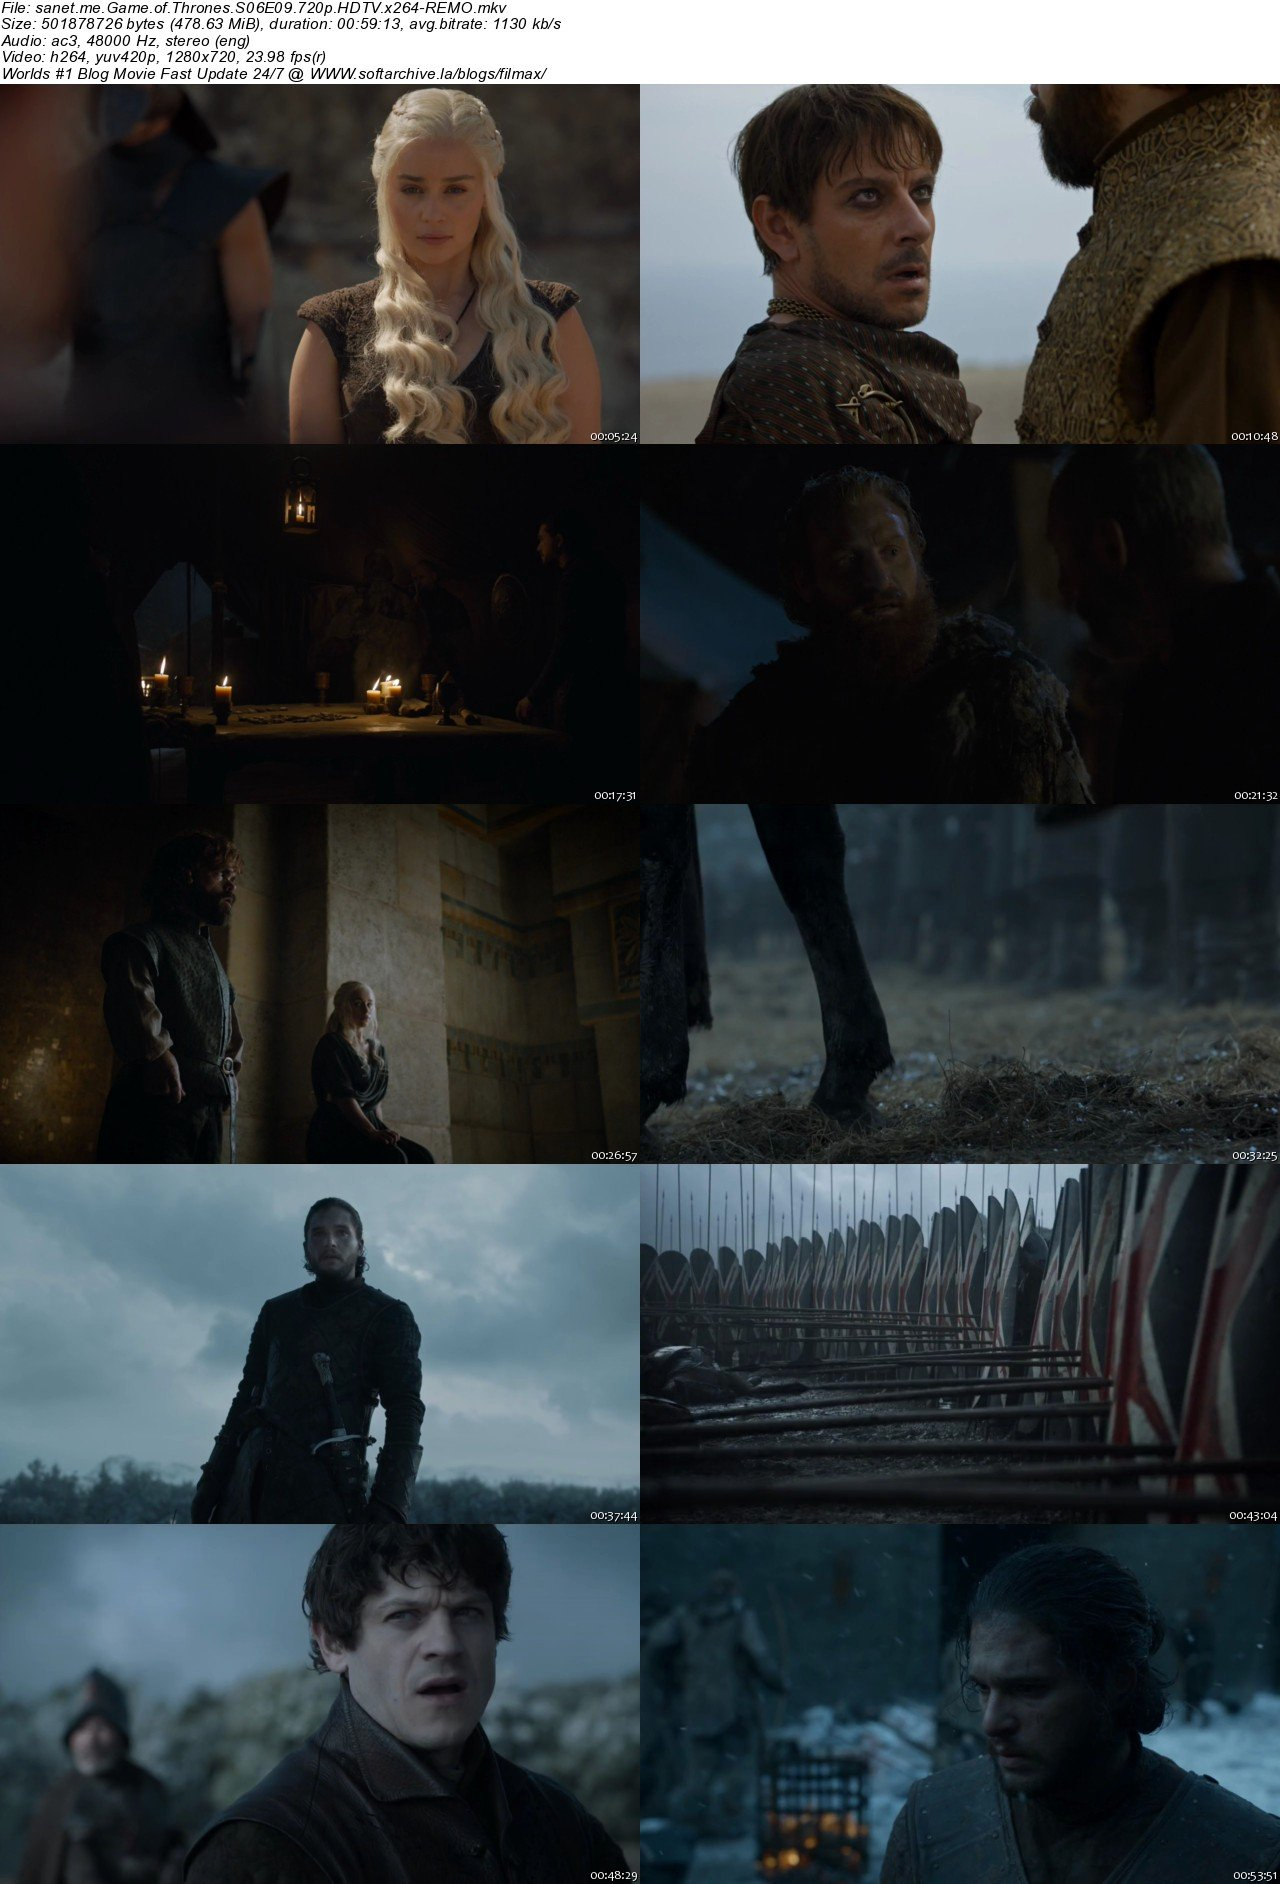 Fullsize Of Game Of Thrones S06e09